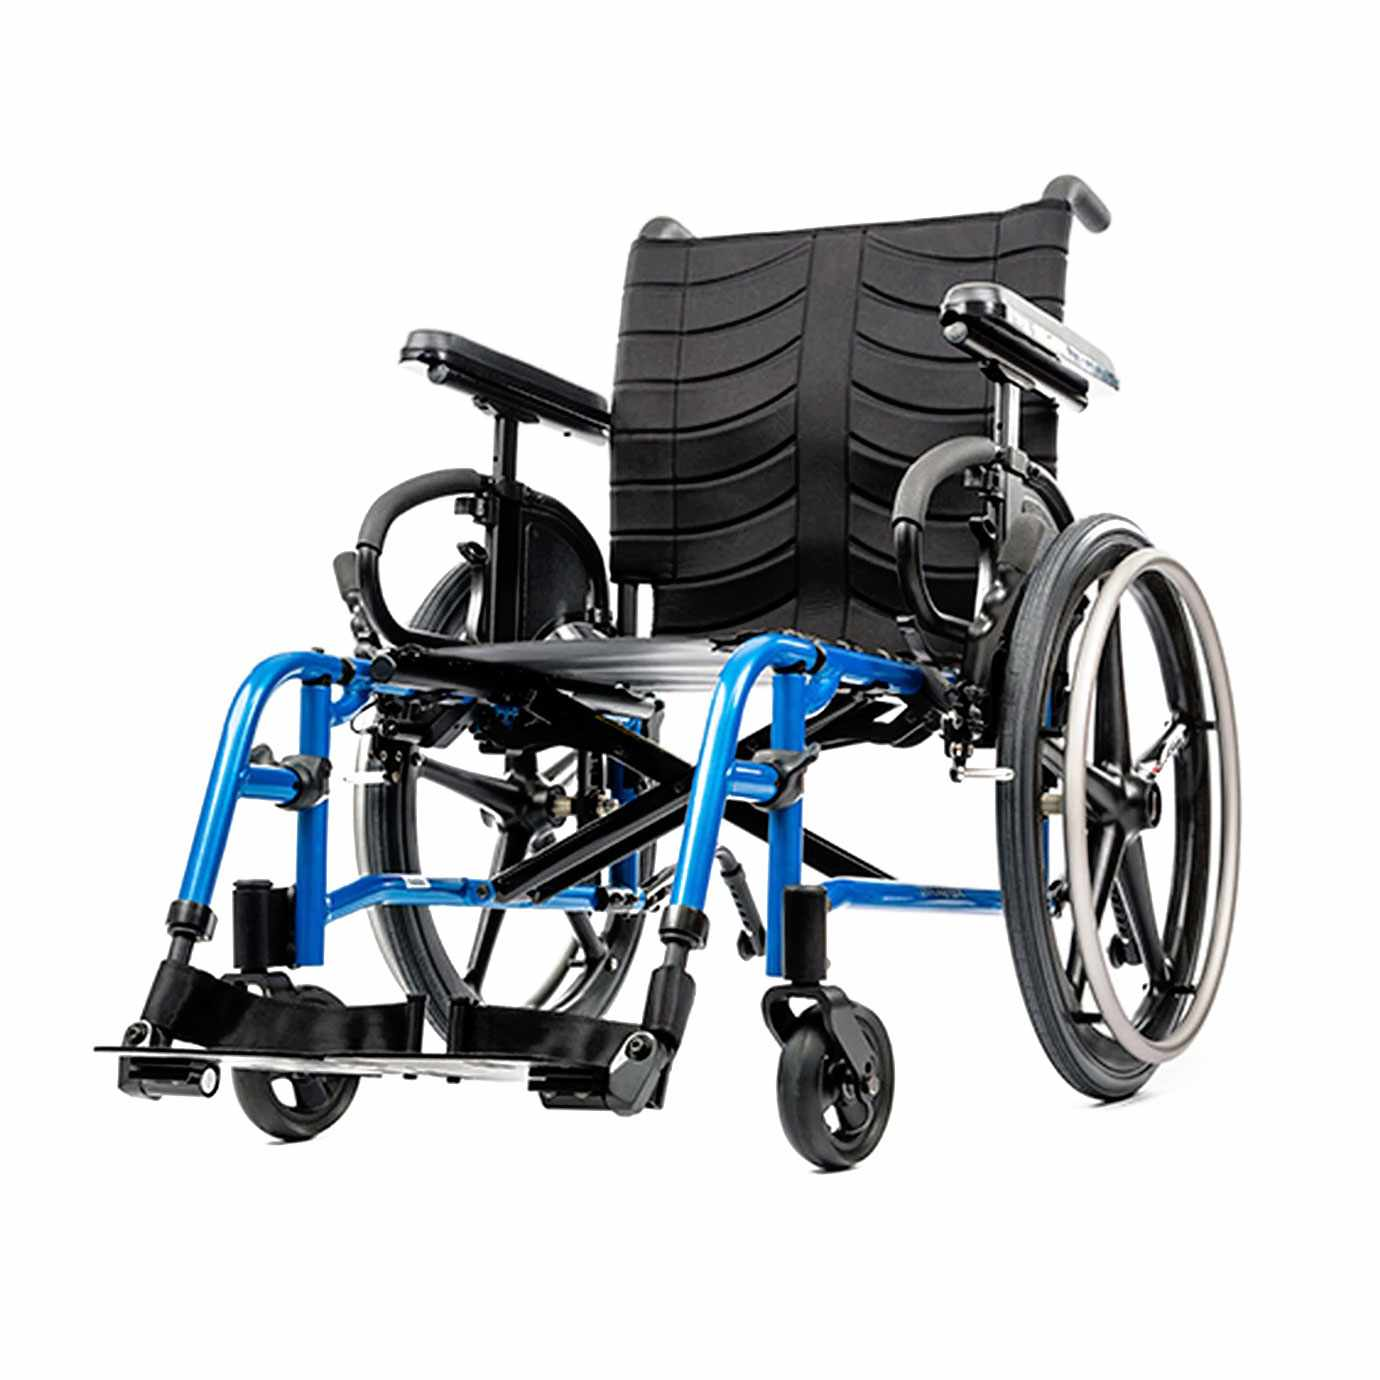 QXi ultra lightweight folding manual wheelchair